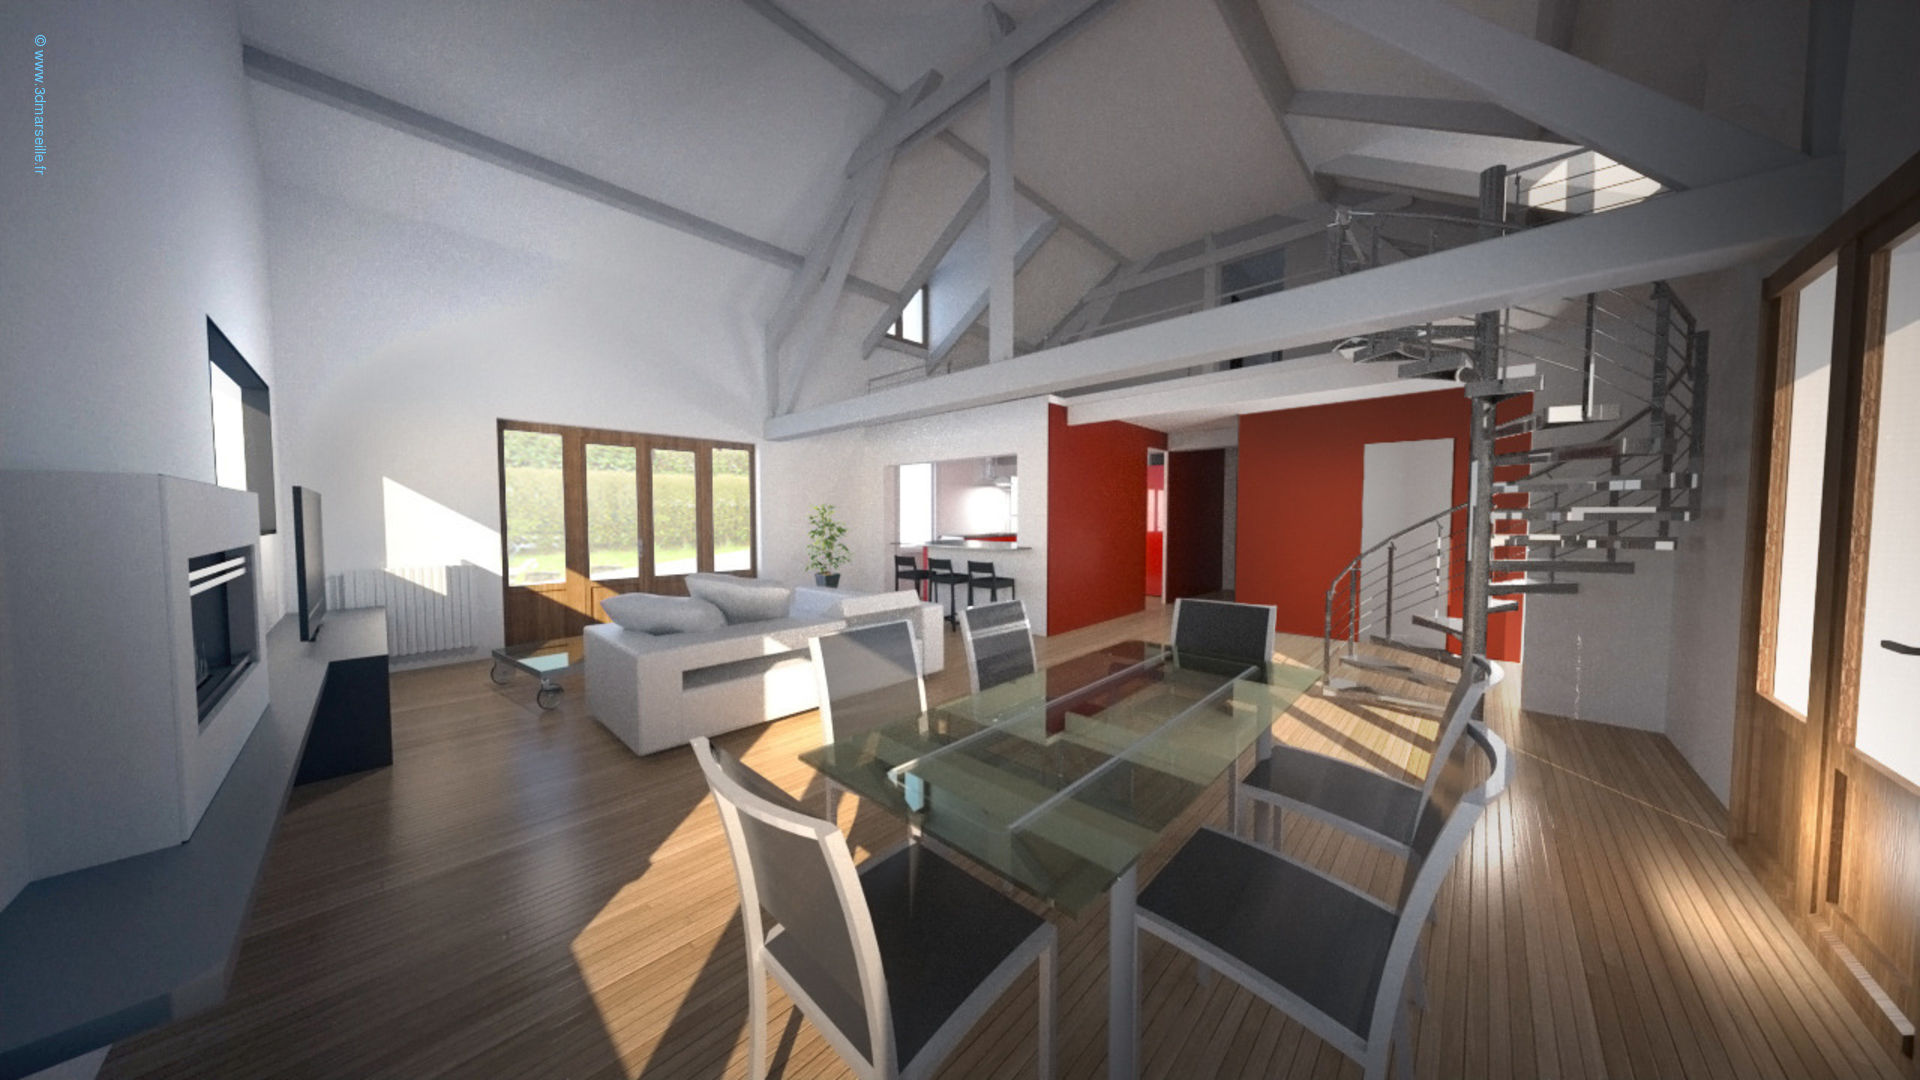 Projet d am nagement int rieur maison individuelle 3d marseille for Plan amenagement interieur